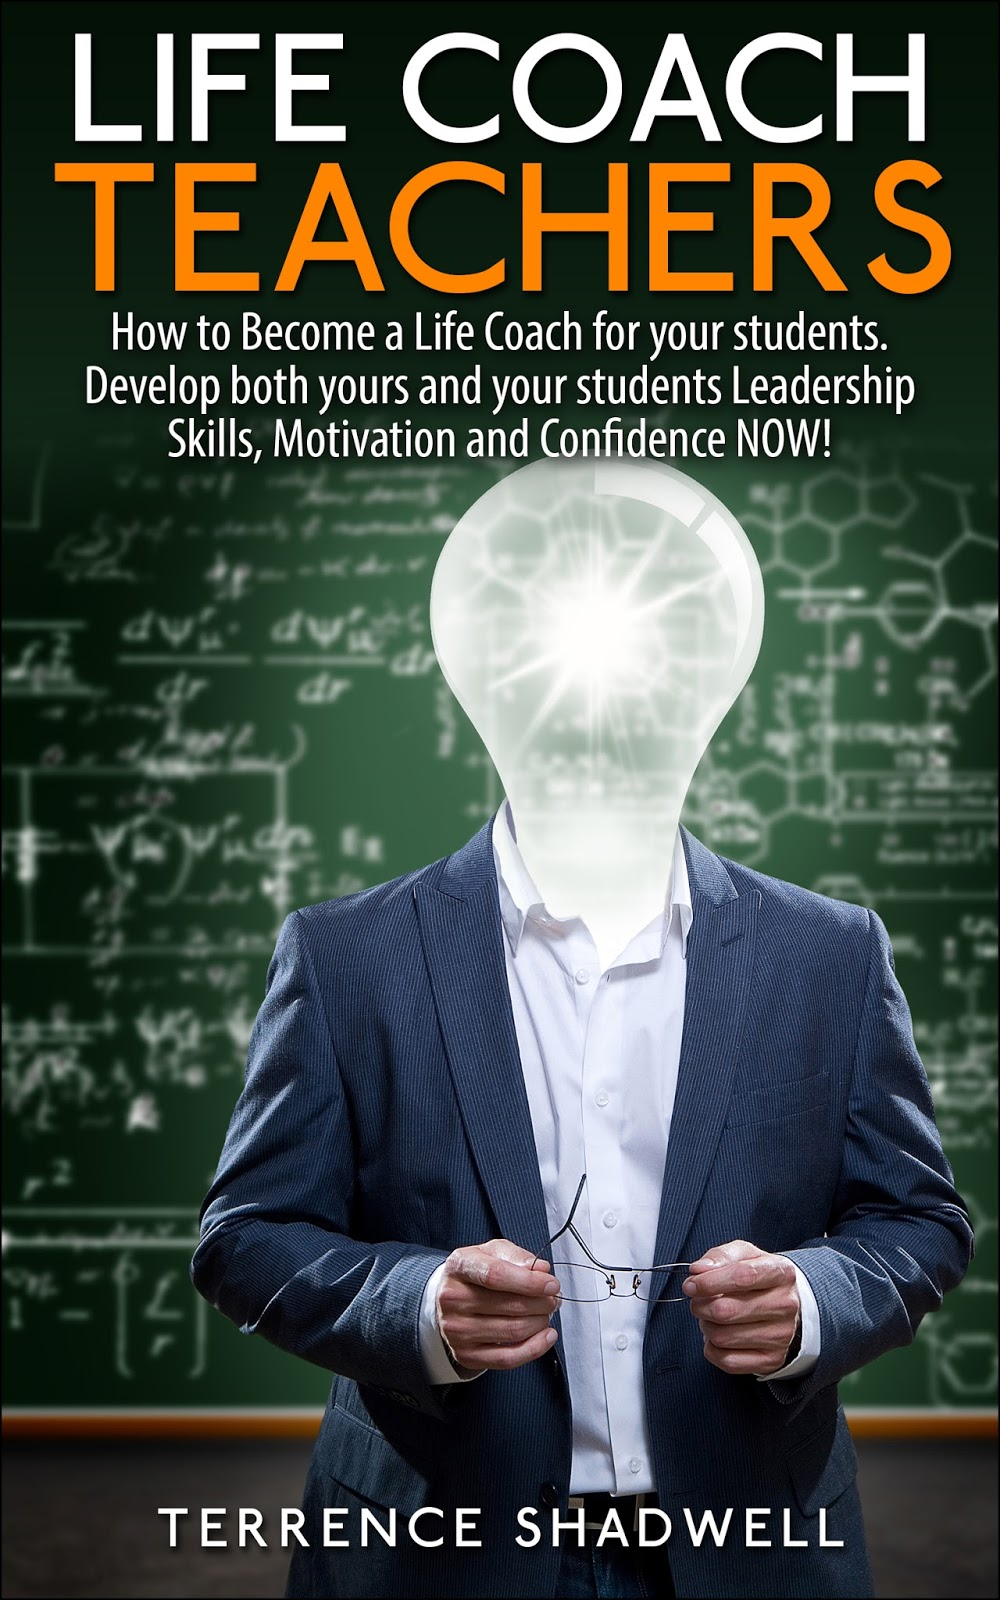 http://www.amazon.com/Life-Coach-Teachers-Leadership-Motivation-ebook/dp/B00M4UR9D0